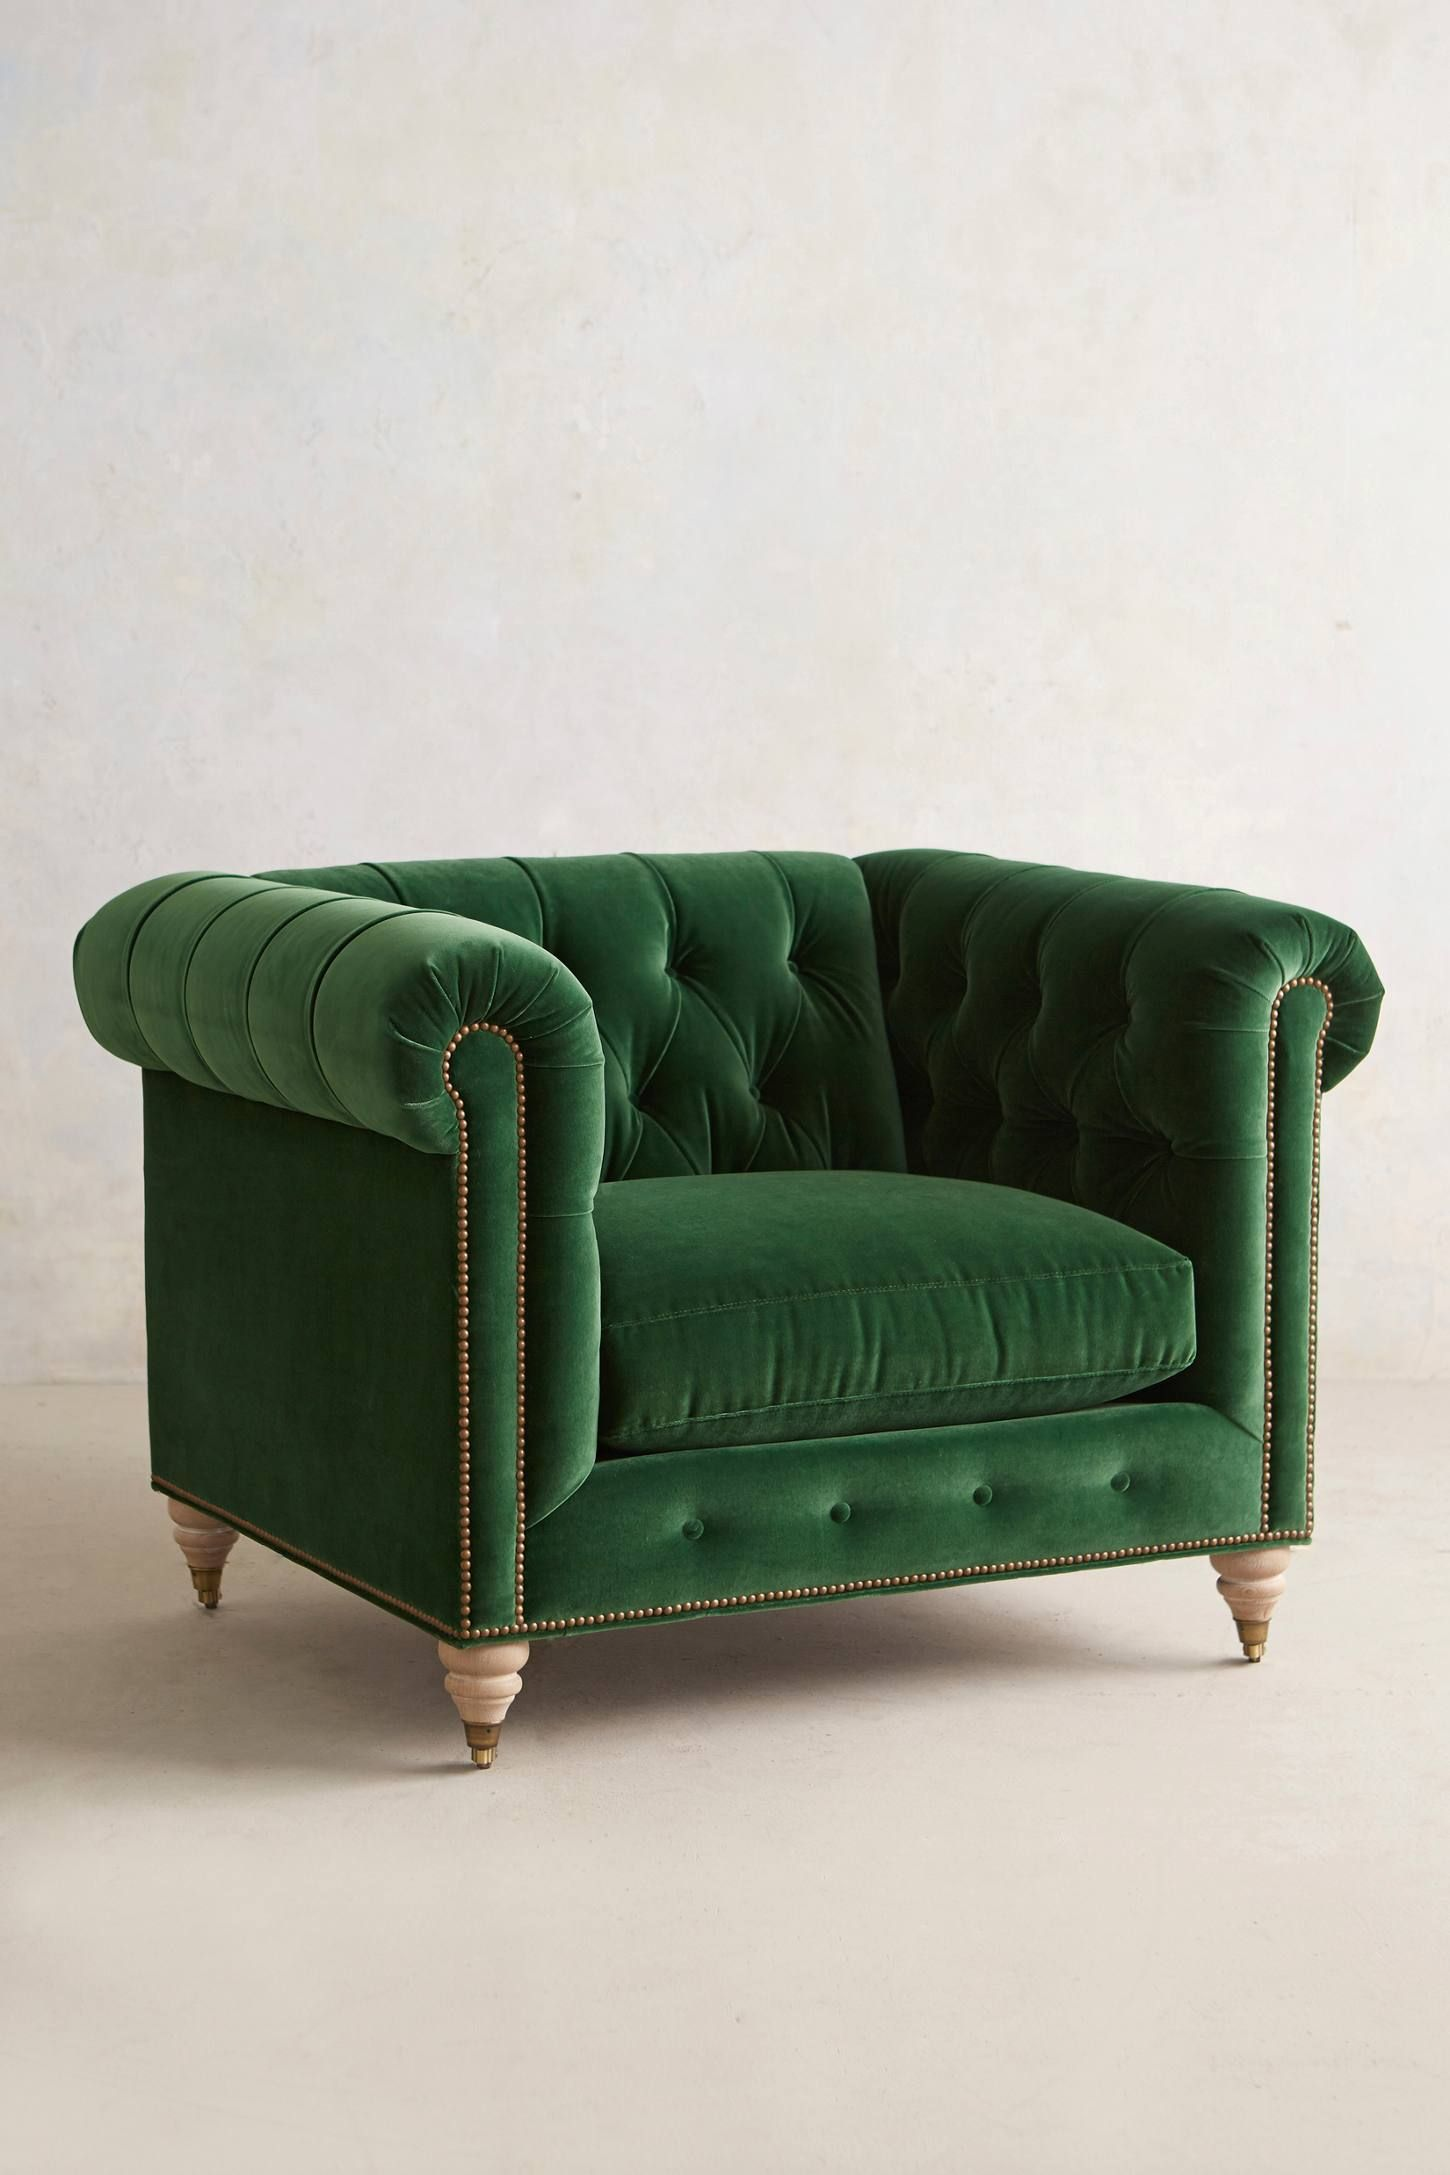 Green Velvet Tufted Chair Folding Rentals Nj Lyre Chesterfield Downton Abbey Inspiration